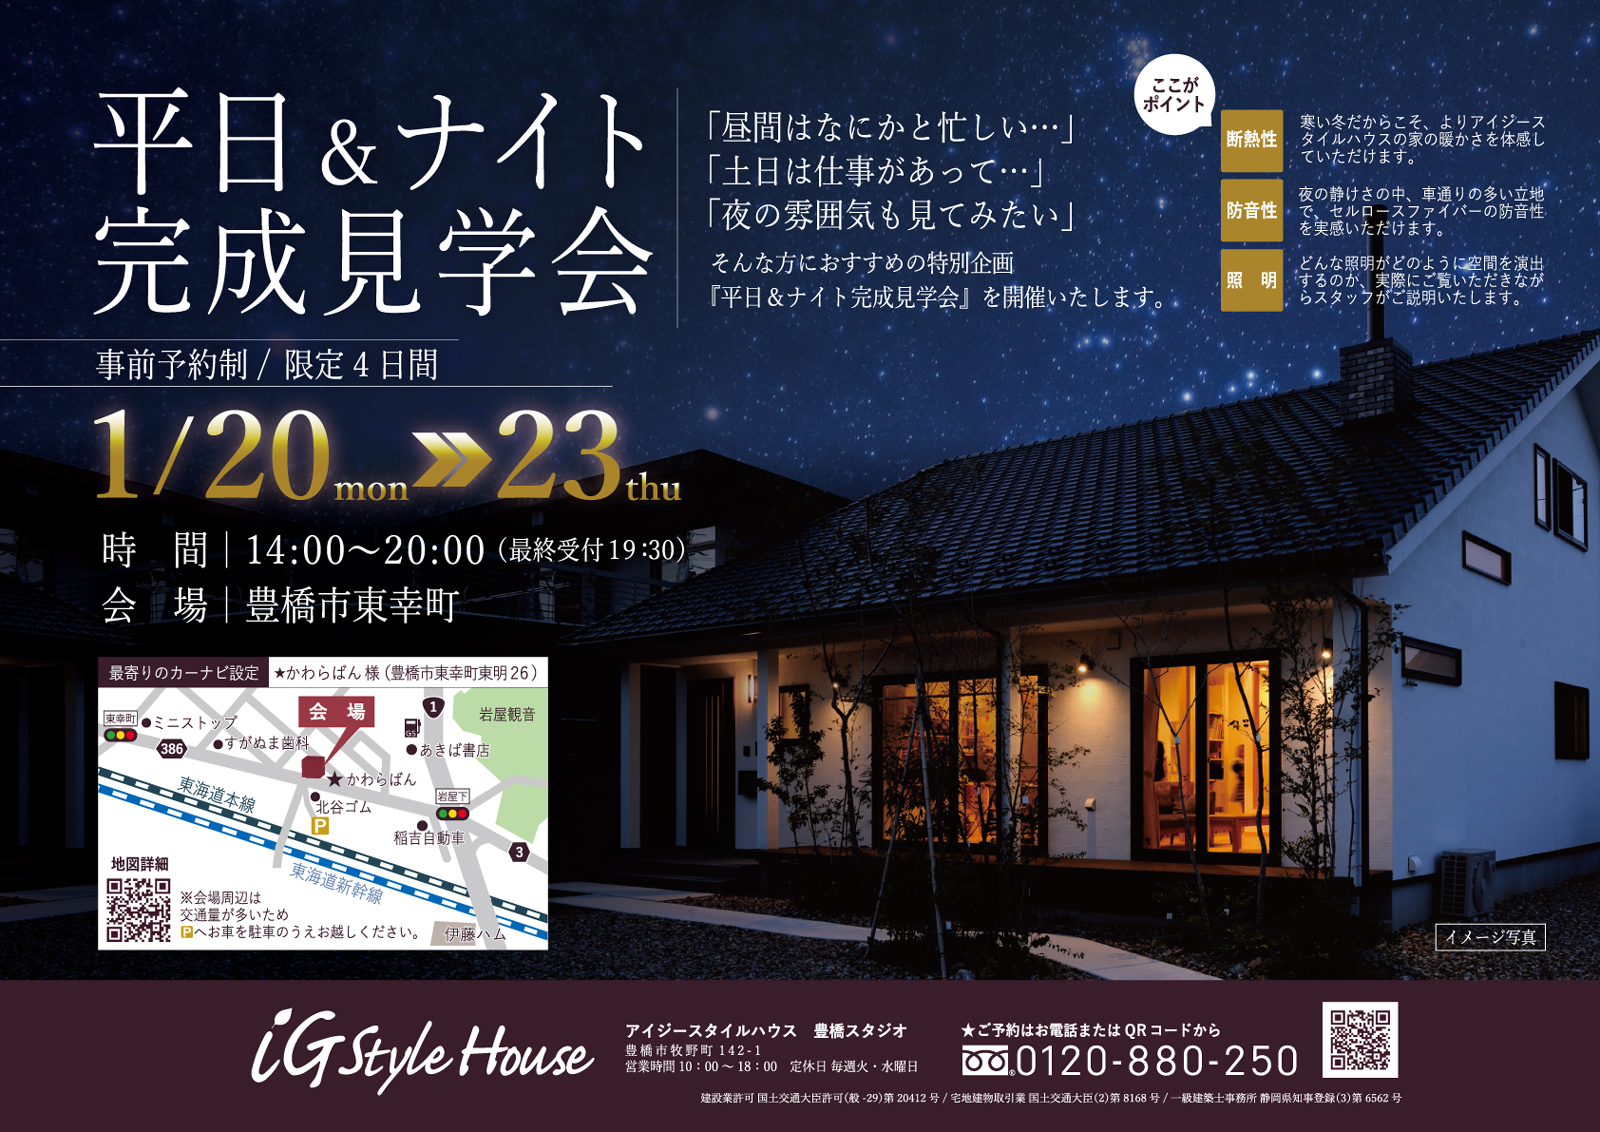 A4|1月20-23日平日&ナイト完成見学会(豊橋市)